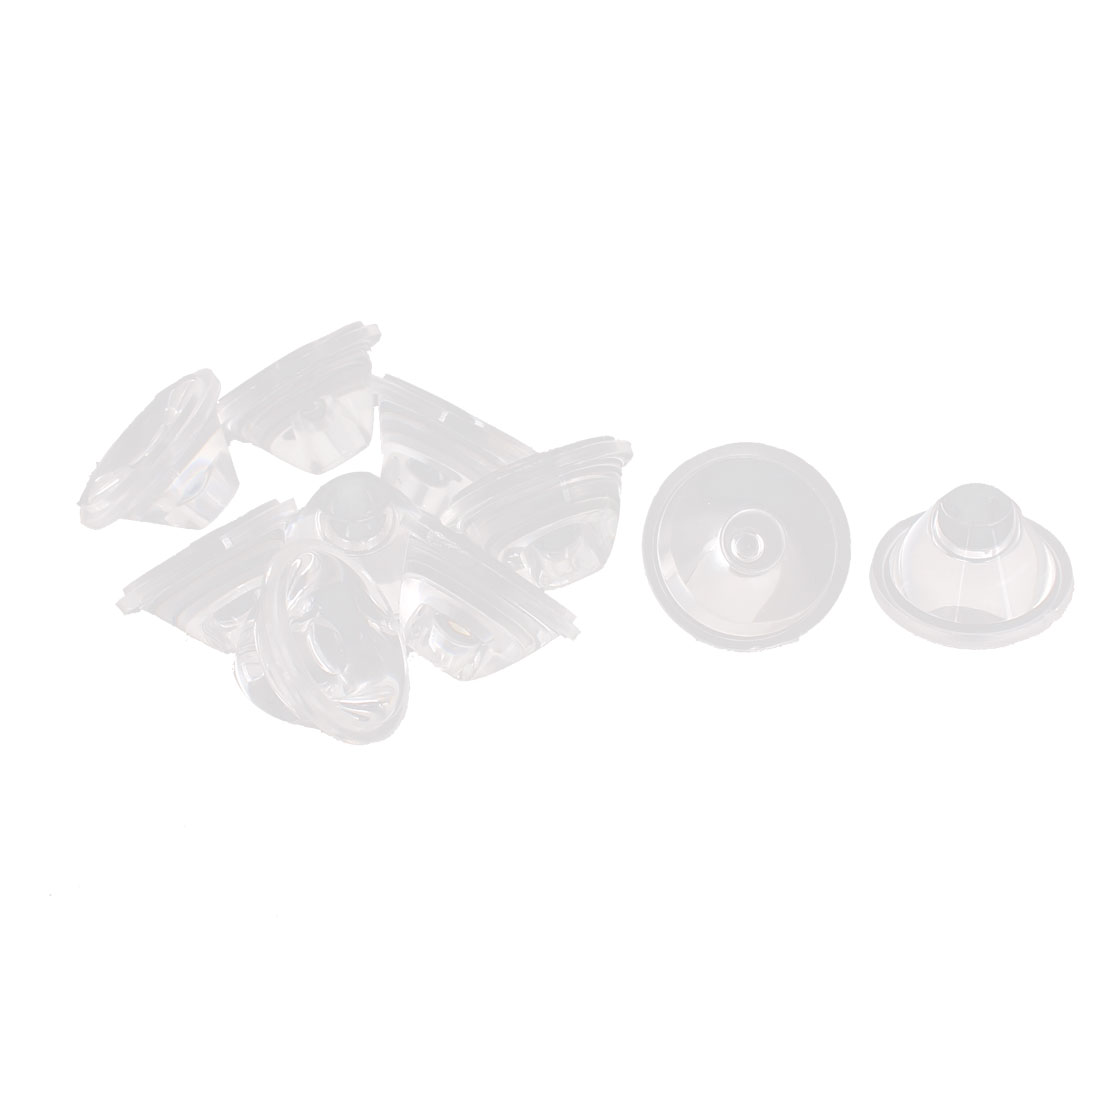 10pcs 20mm Transparent High Power LED Lens Reflector Collimator 45 Degree